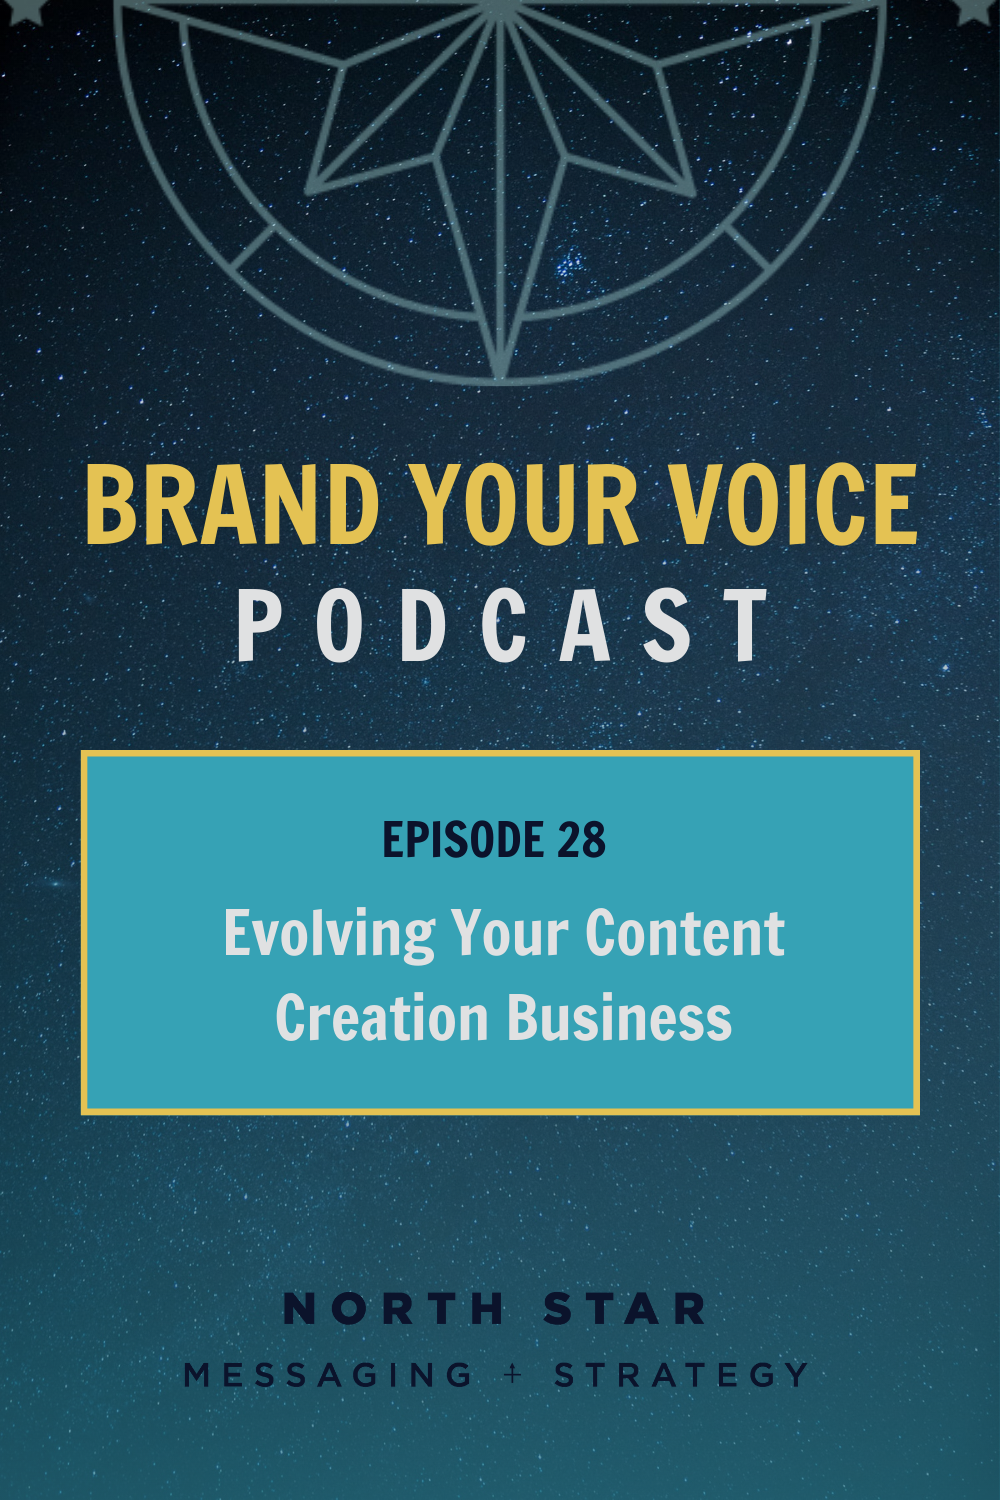 EPISODE 28: Evolving Your Content Creation Business